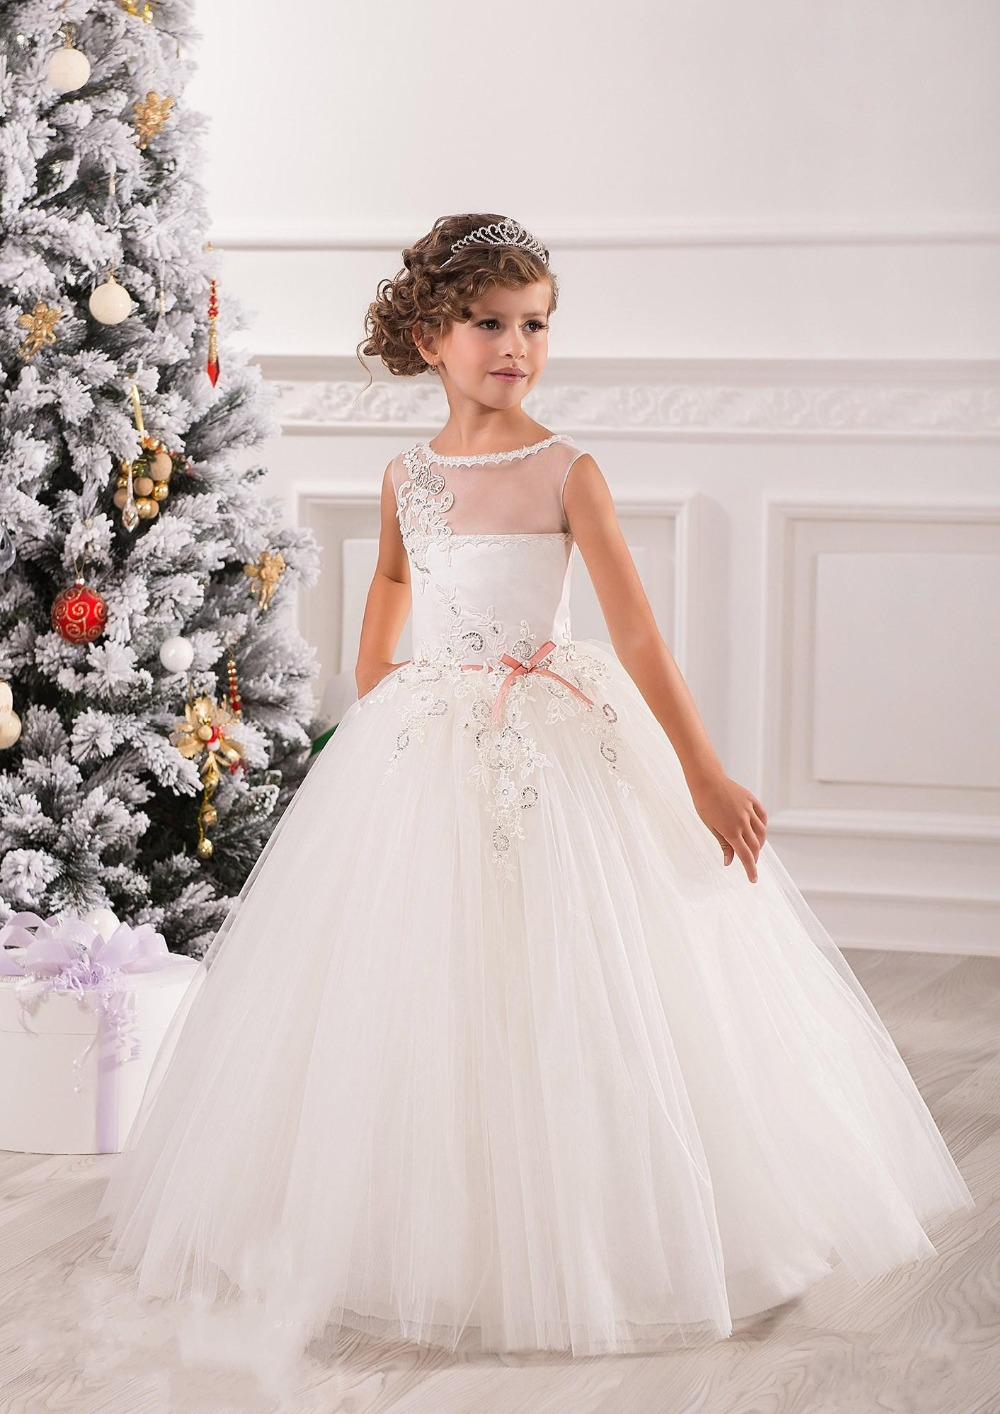 elegant white lace ball gowns tulle flower girl dresses for weddings girls pageant dresses 2016. Black Bedroom Furniture Sets. Home Design Ideas